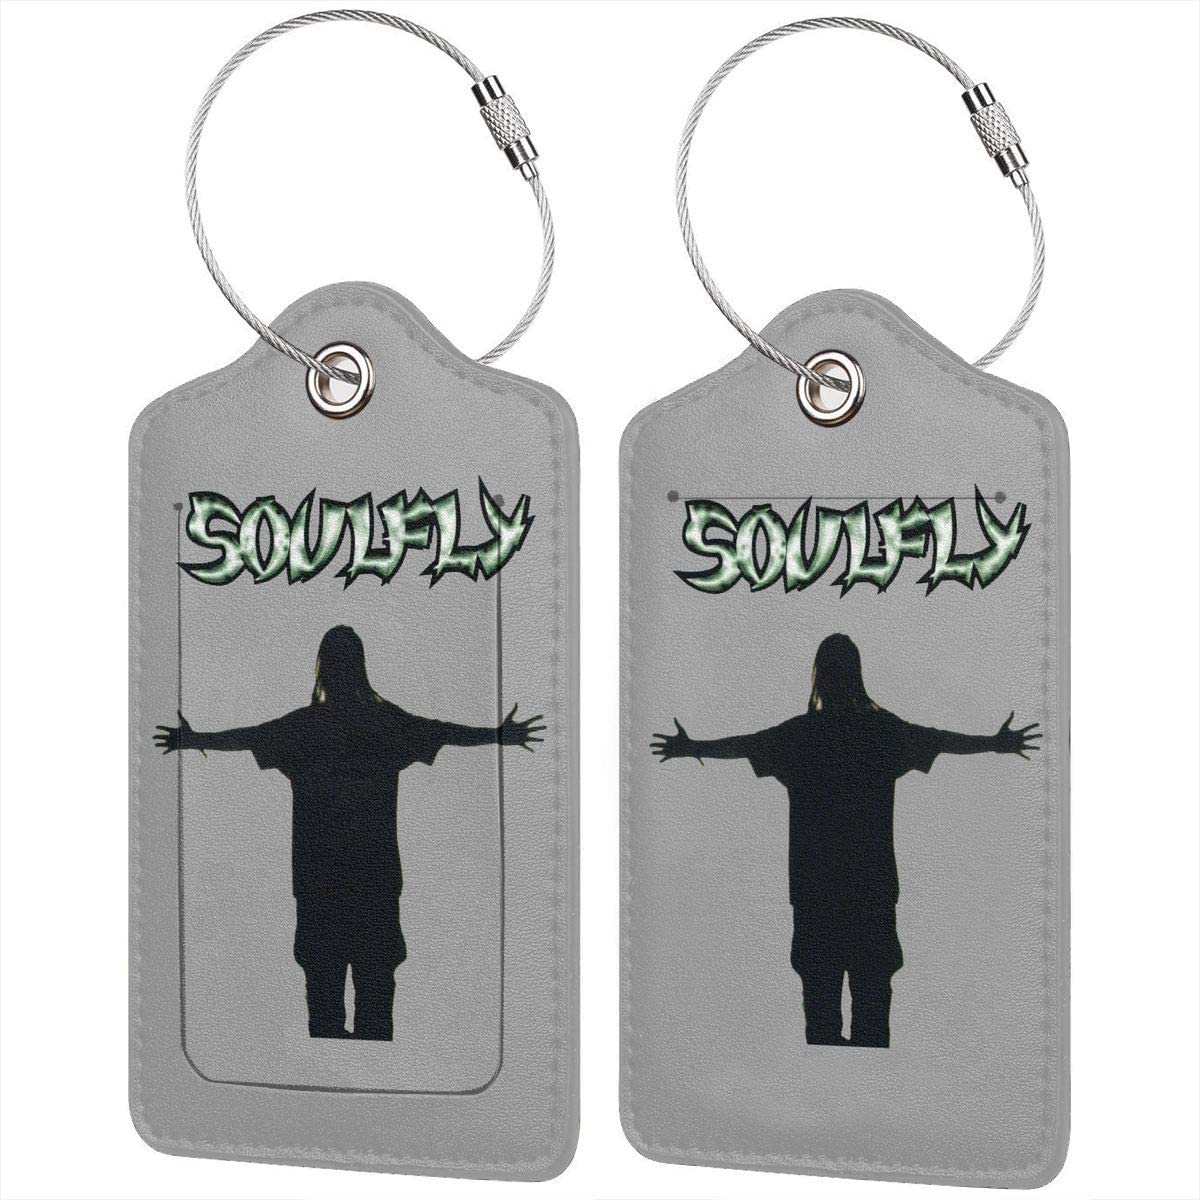 LIKUNMING Soulfly Travel Luggage Tags Travel Suitcase Bag Labels Checked Baggage Tags